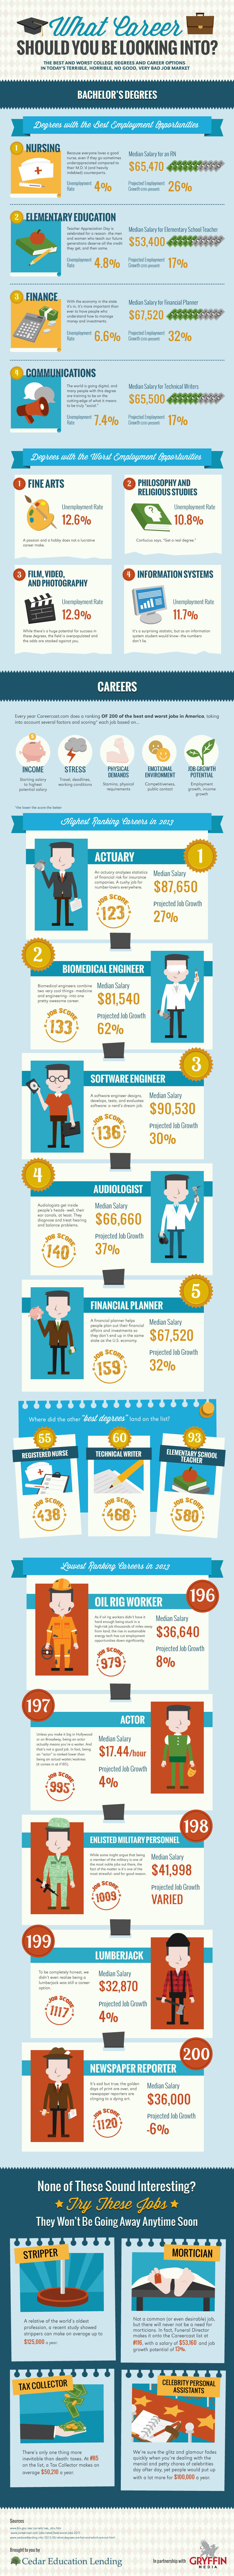 What Career Should You Be Looking Into? - #Infographic